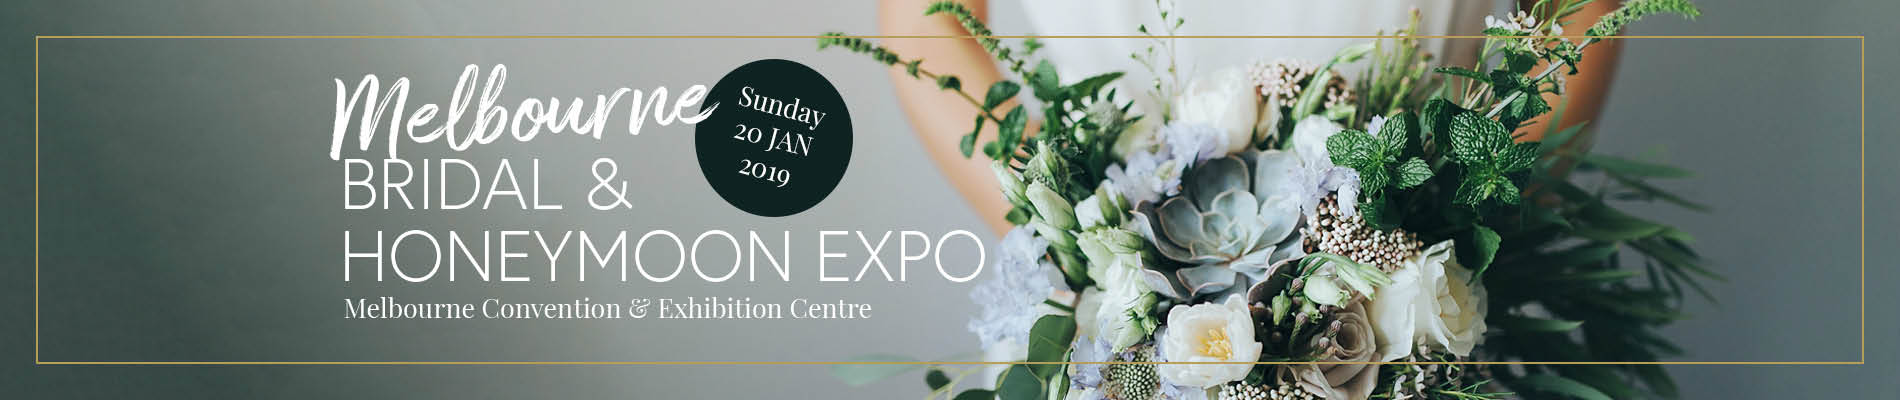 Melbourne Bridal & Honeymoon Expo 2019